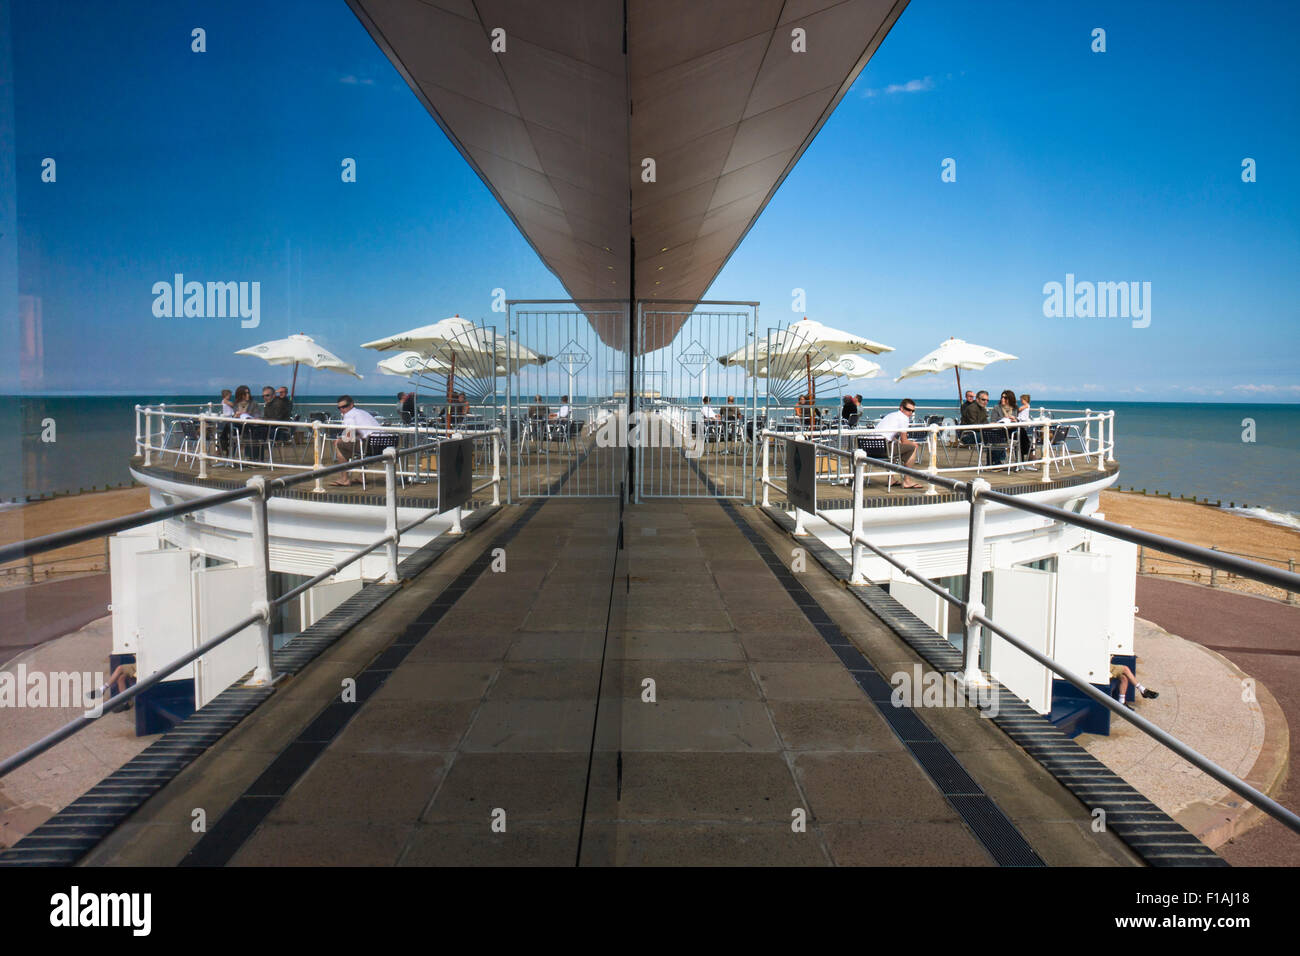 Reflections of the Azur restaurant and seafront at the Marina Pavilion, a 1930's building on the promenade St - Stock Image